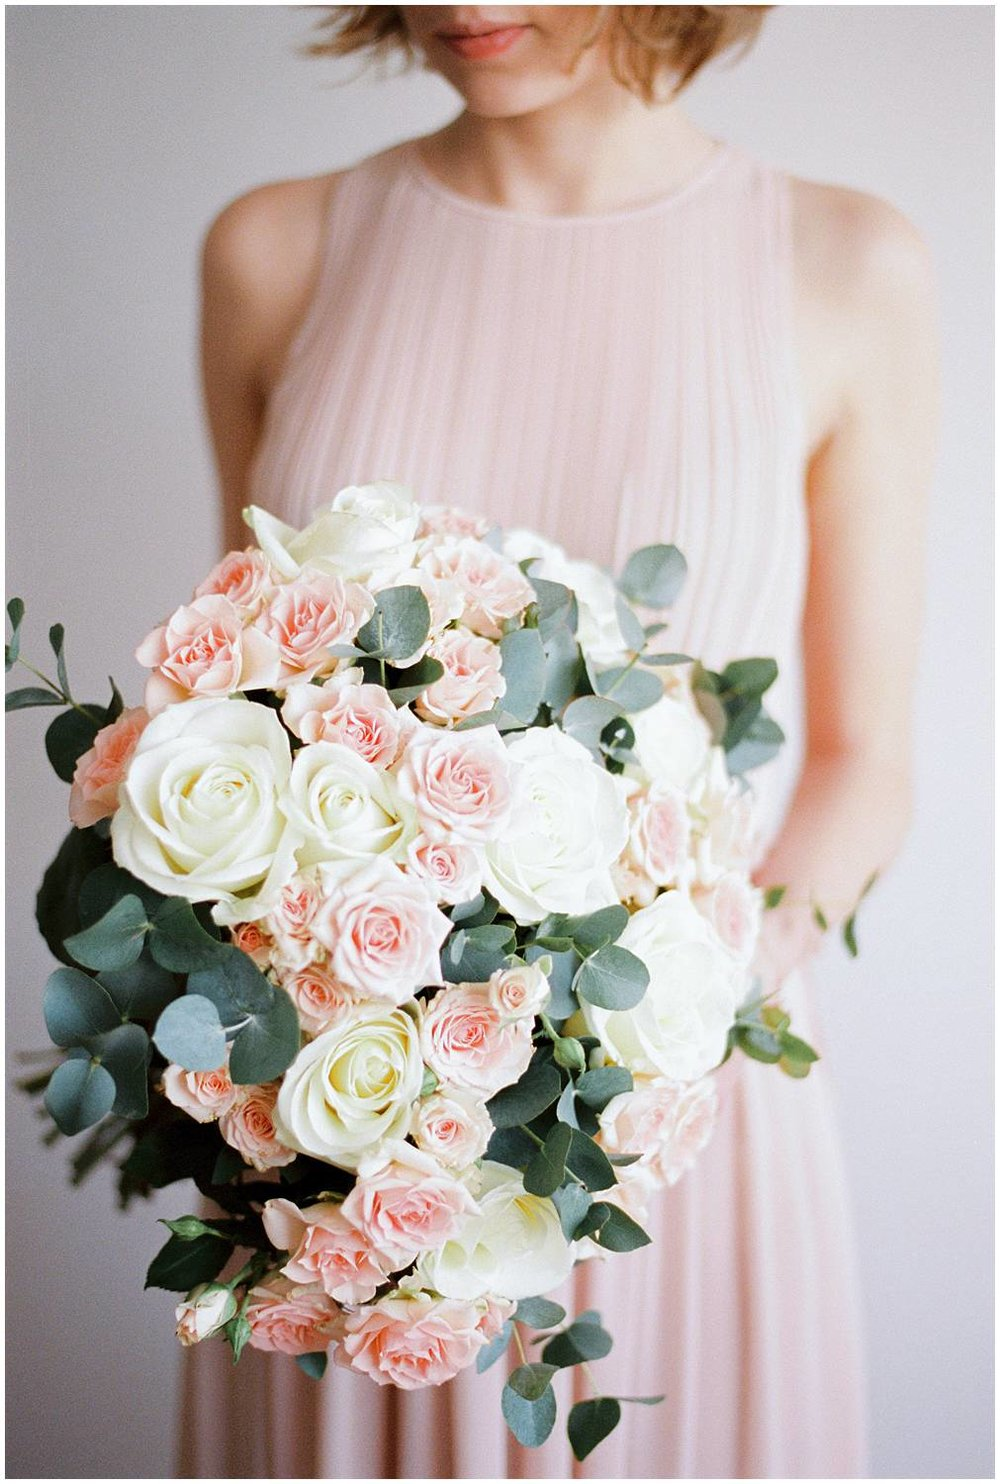 Gorgeous Bouquet from Bergamotte for a bride in Paris